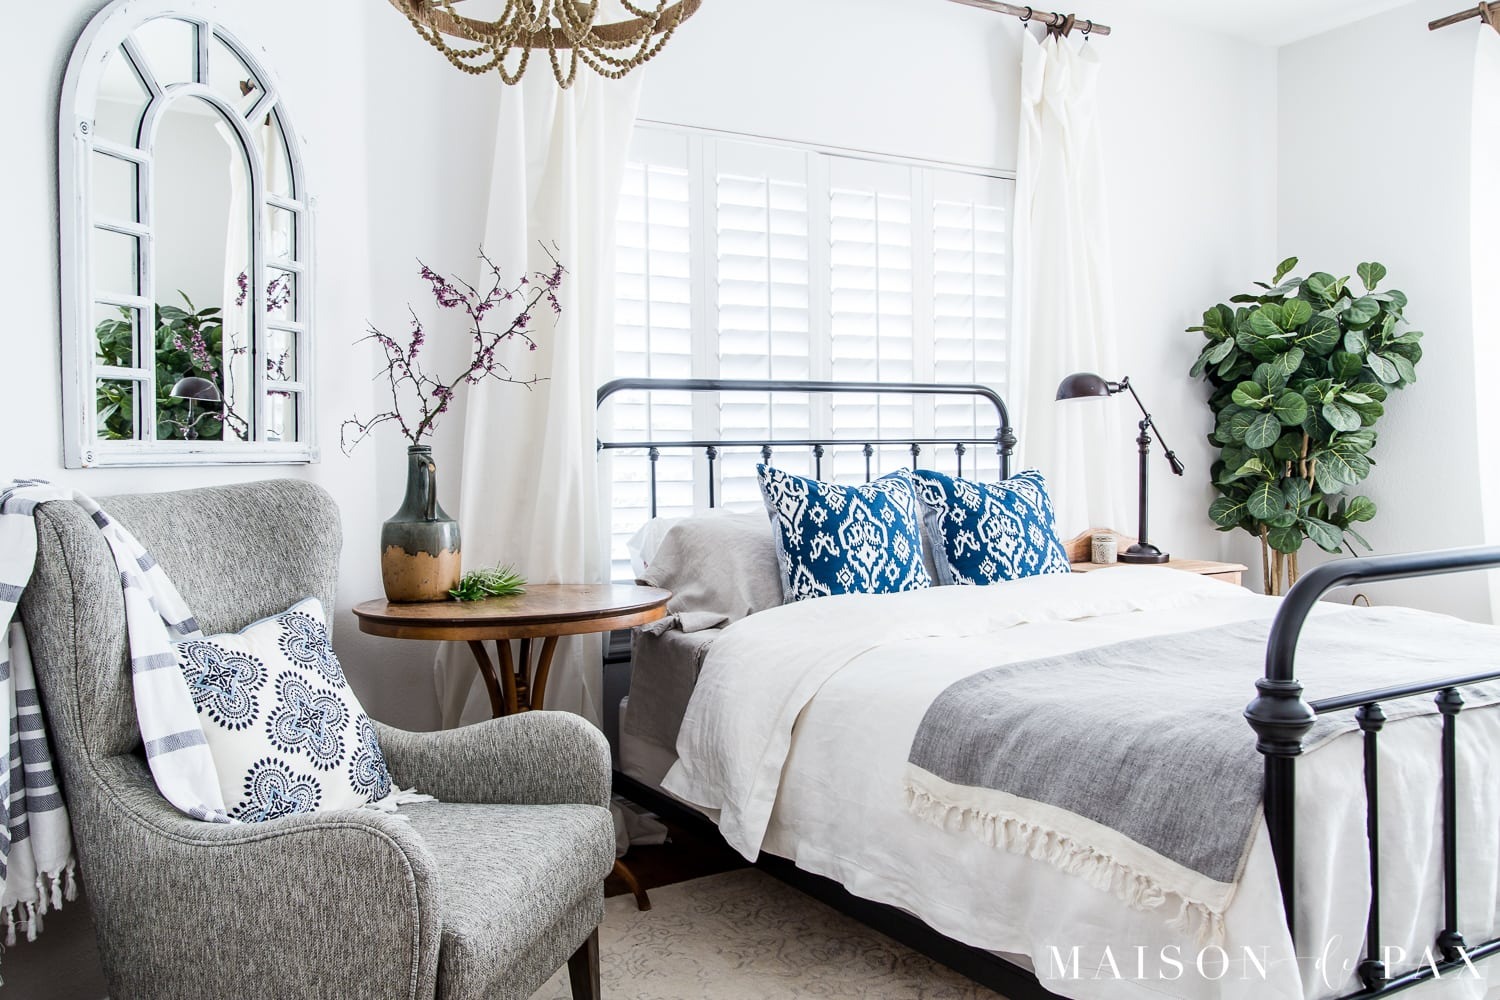 Mostly White Bedroom With Pops Of Blue For Spring/summer... Looking To